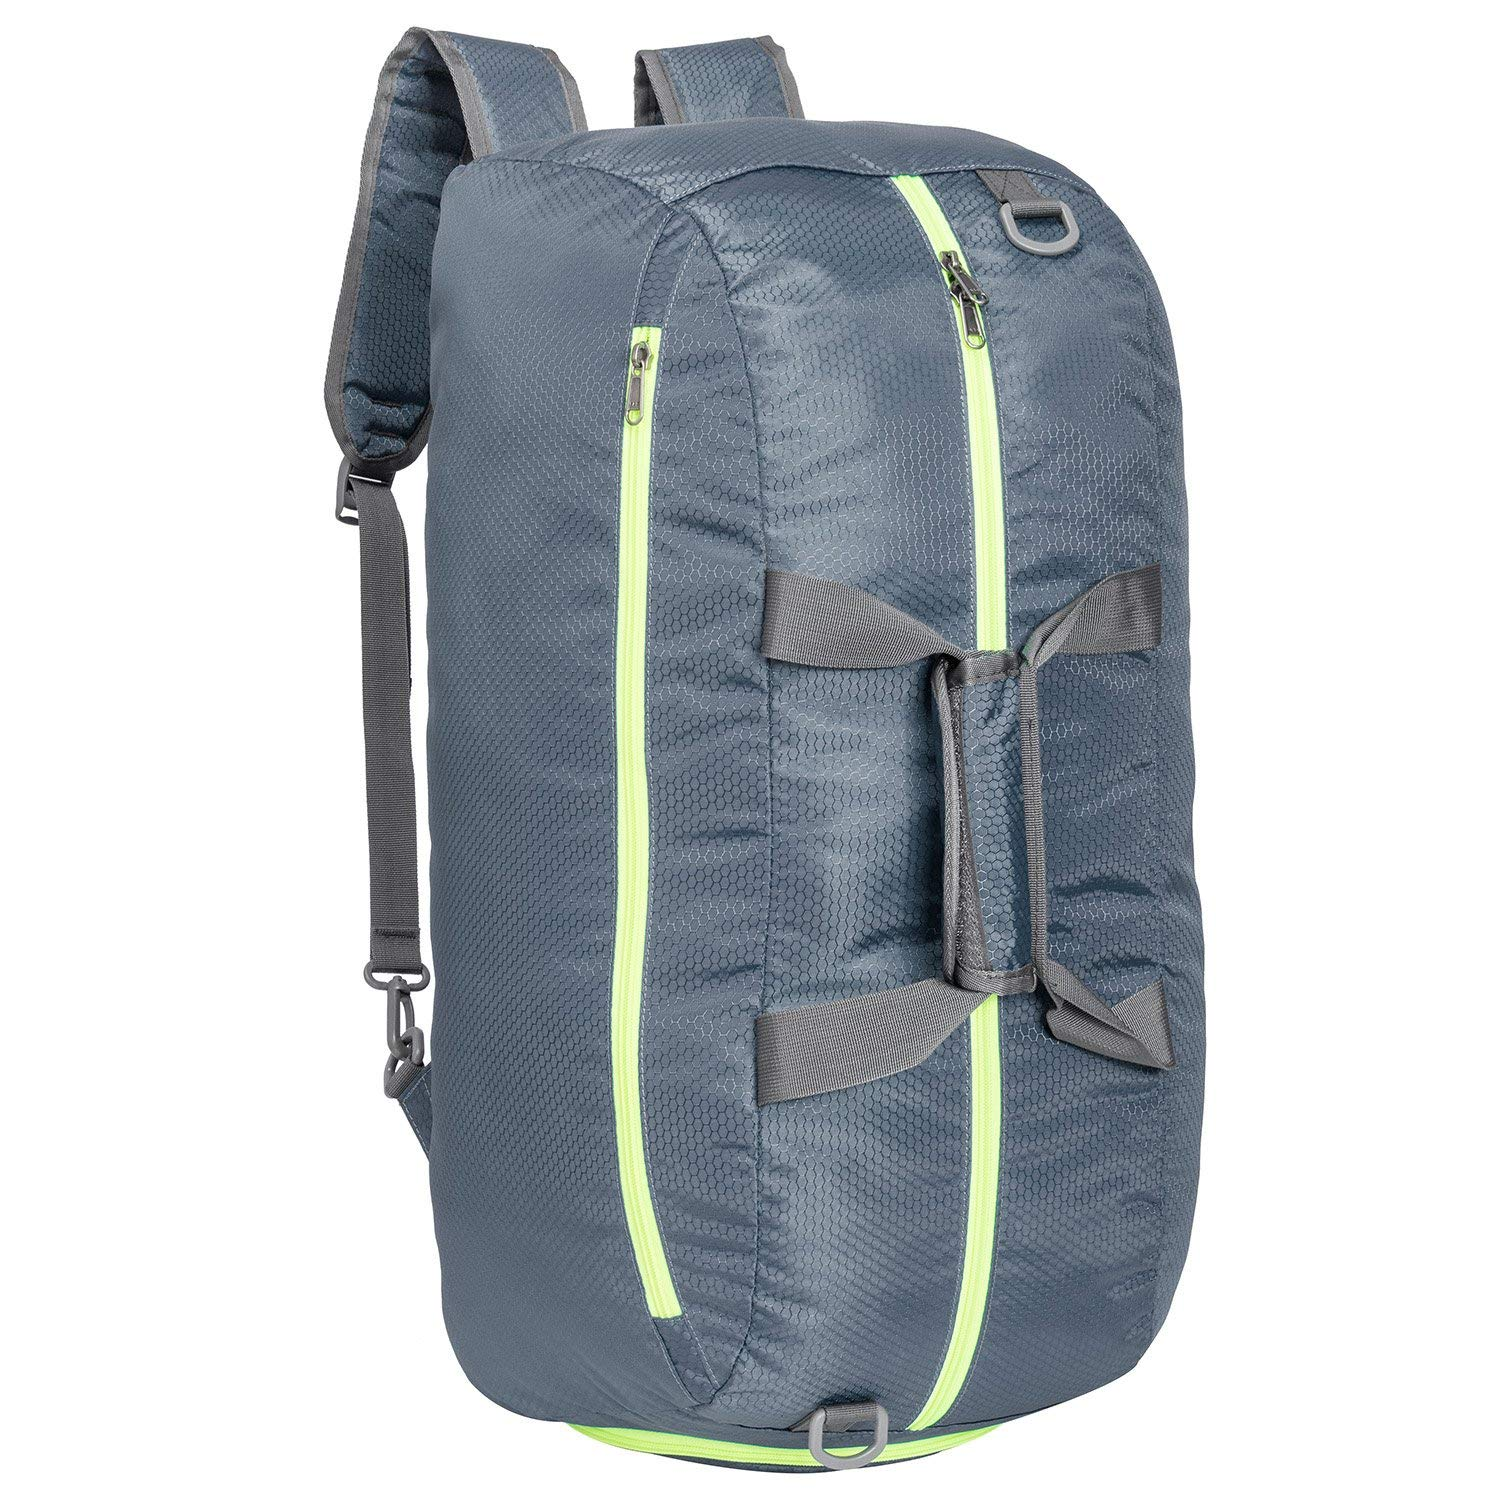 a6a7d866a5 Get Quotations · Riavika Travel Duffel Bag Backpack Luggage Gym Sports Bag  with Shoe Compartment